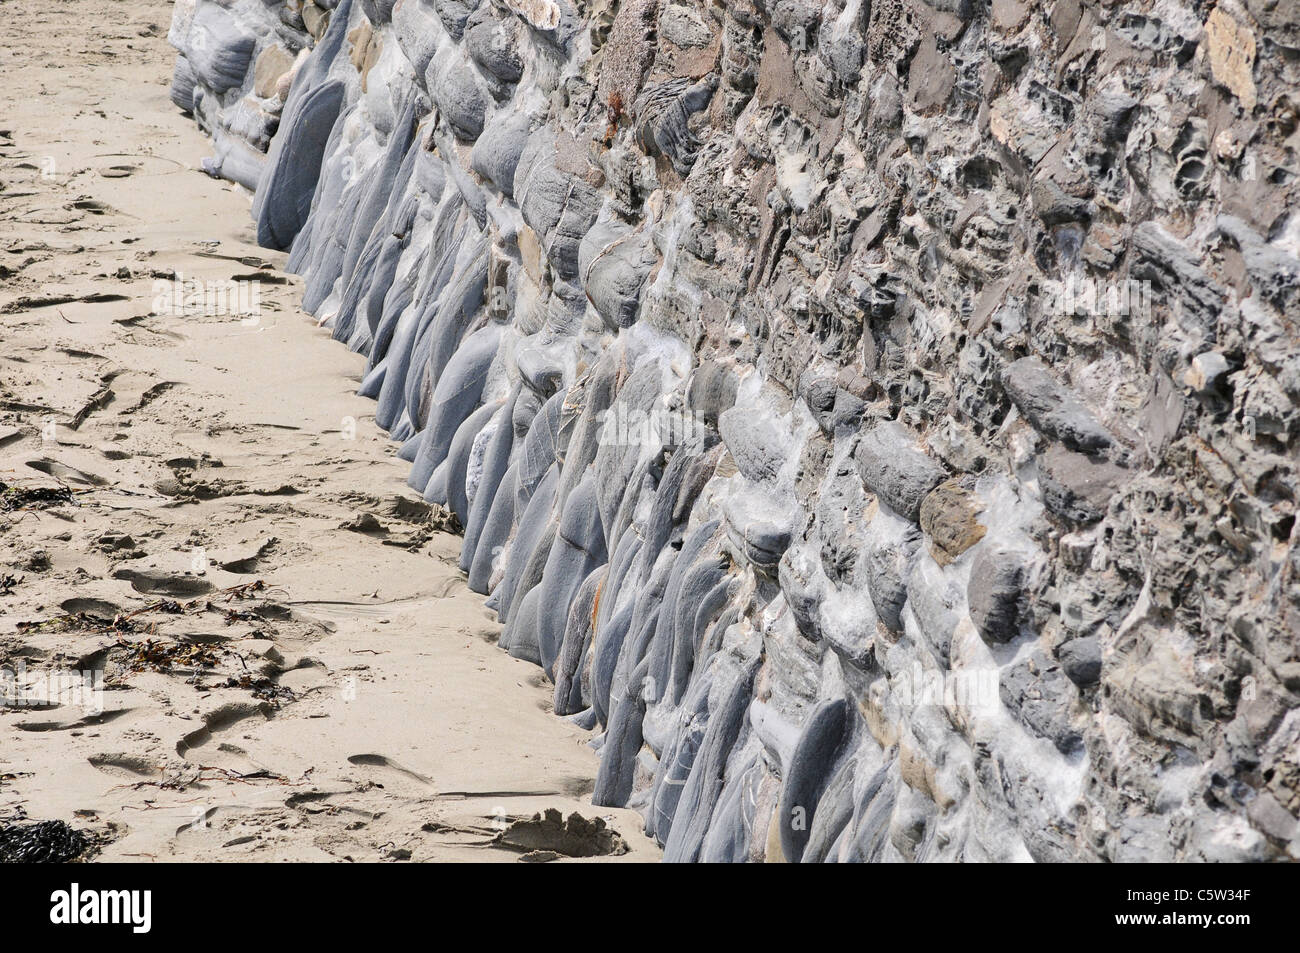 Part of the sea wall worn smooth by high tide - Stock Image